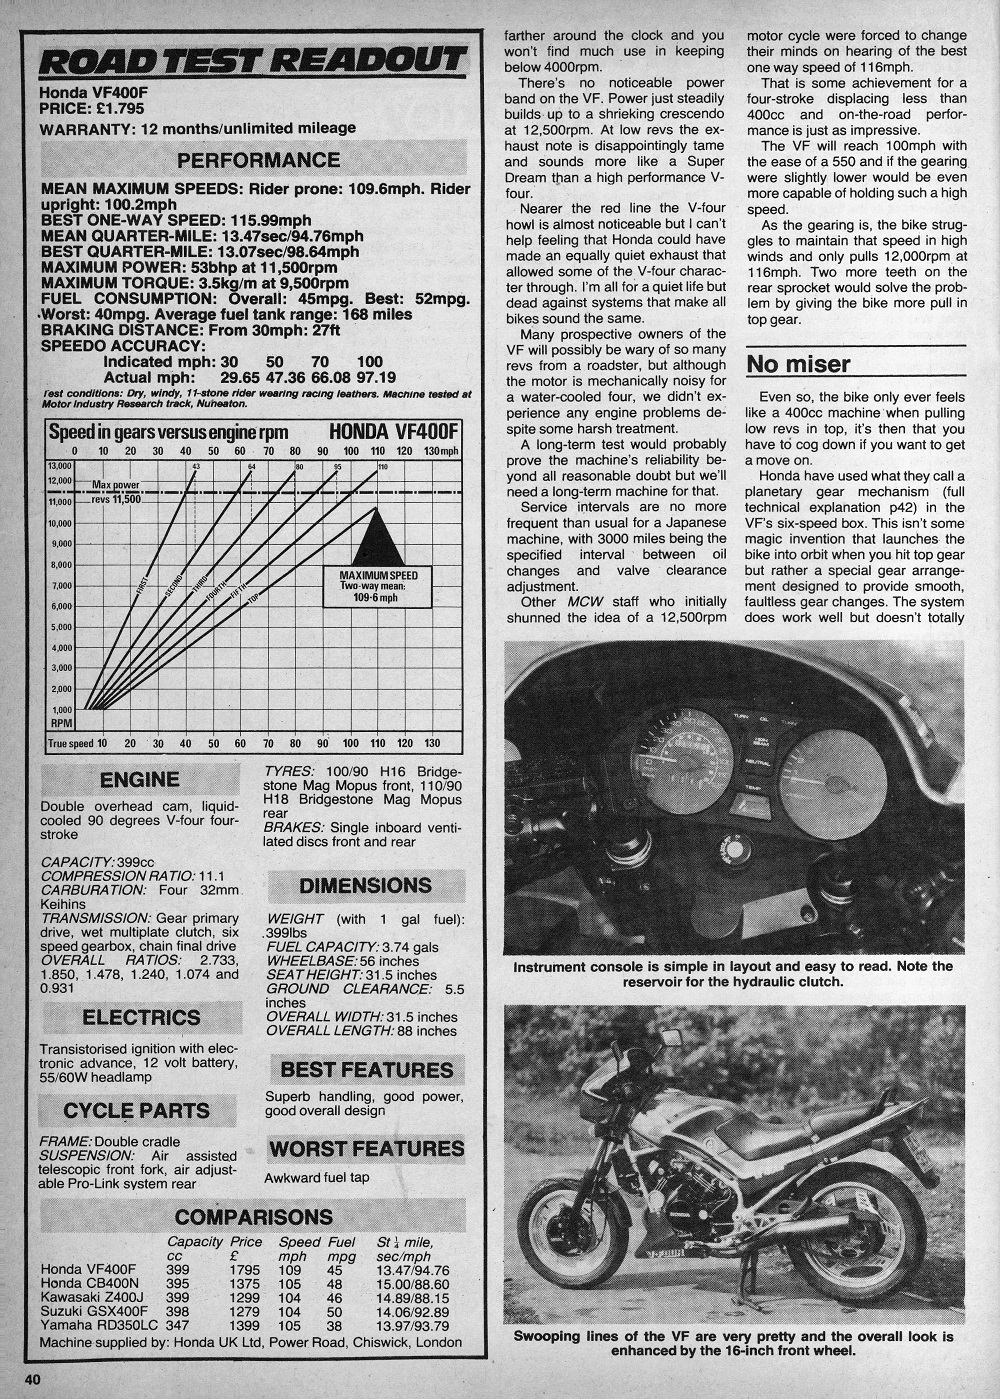 1983 Honda VF400F road test.4.jpg